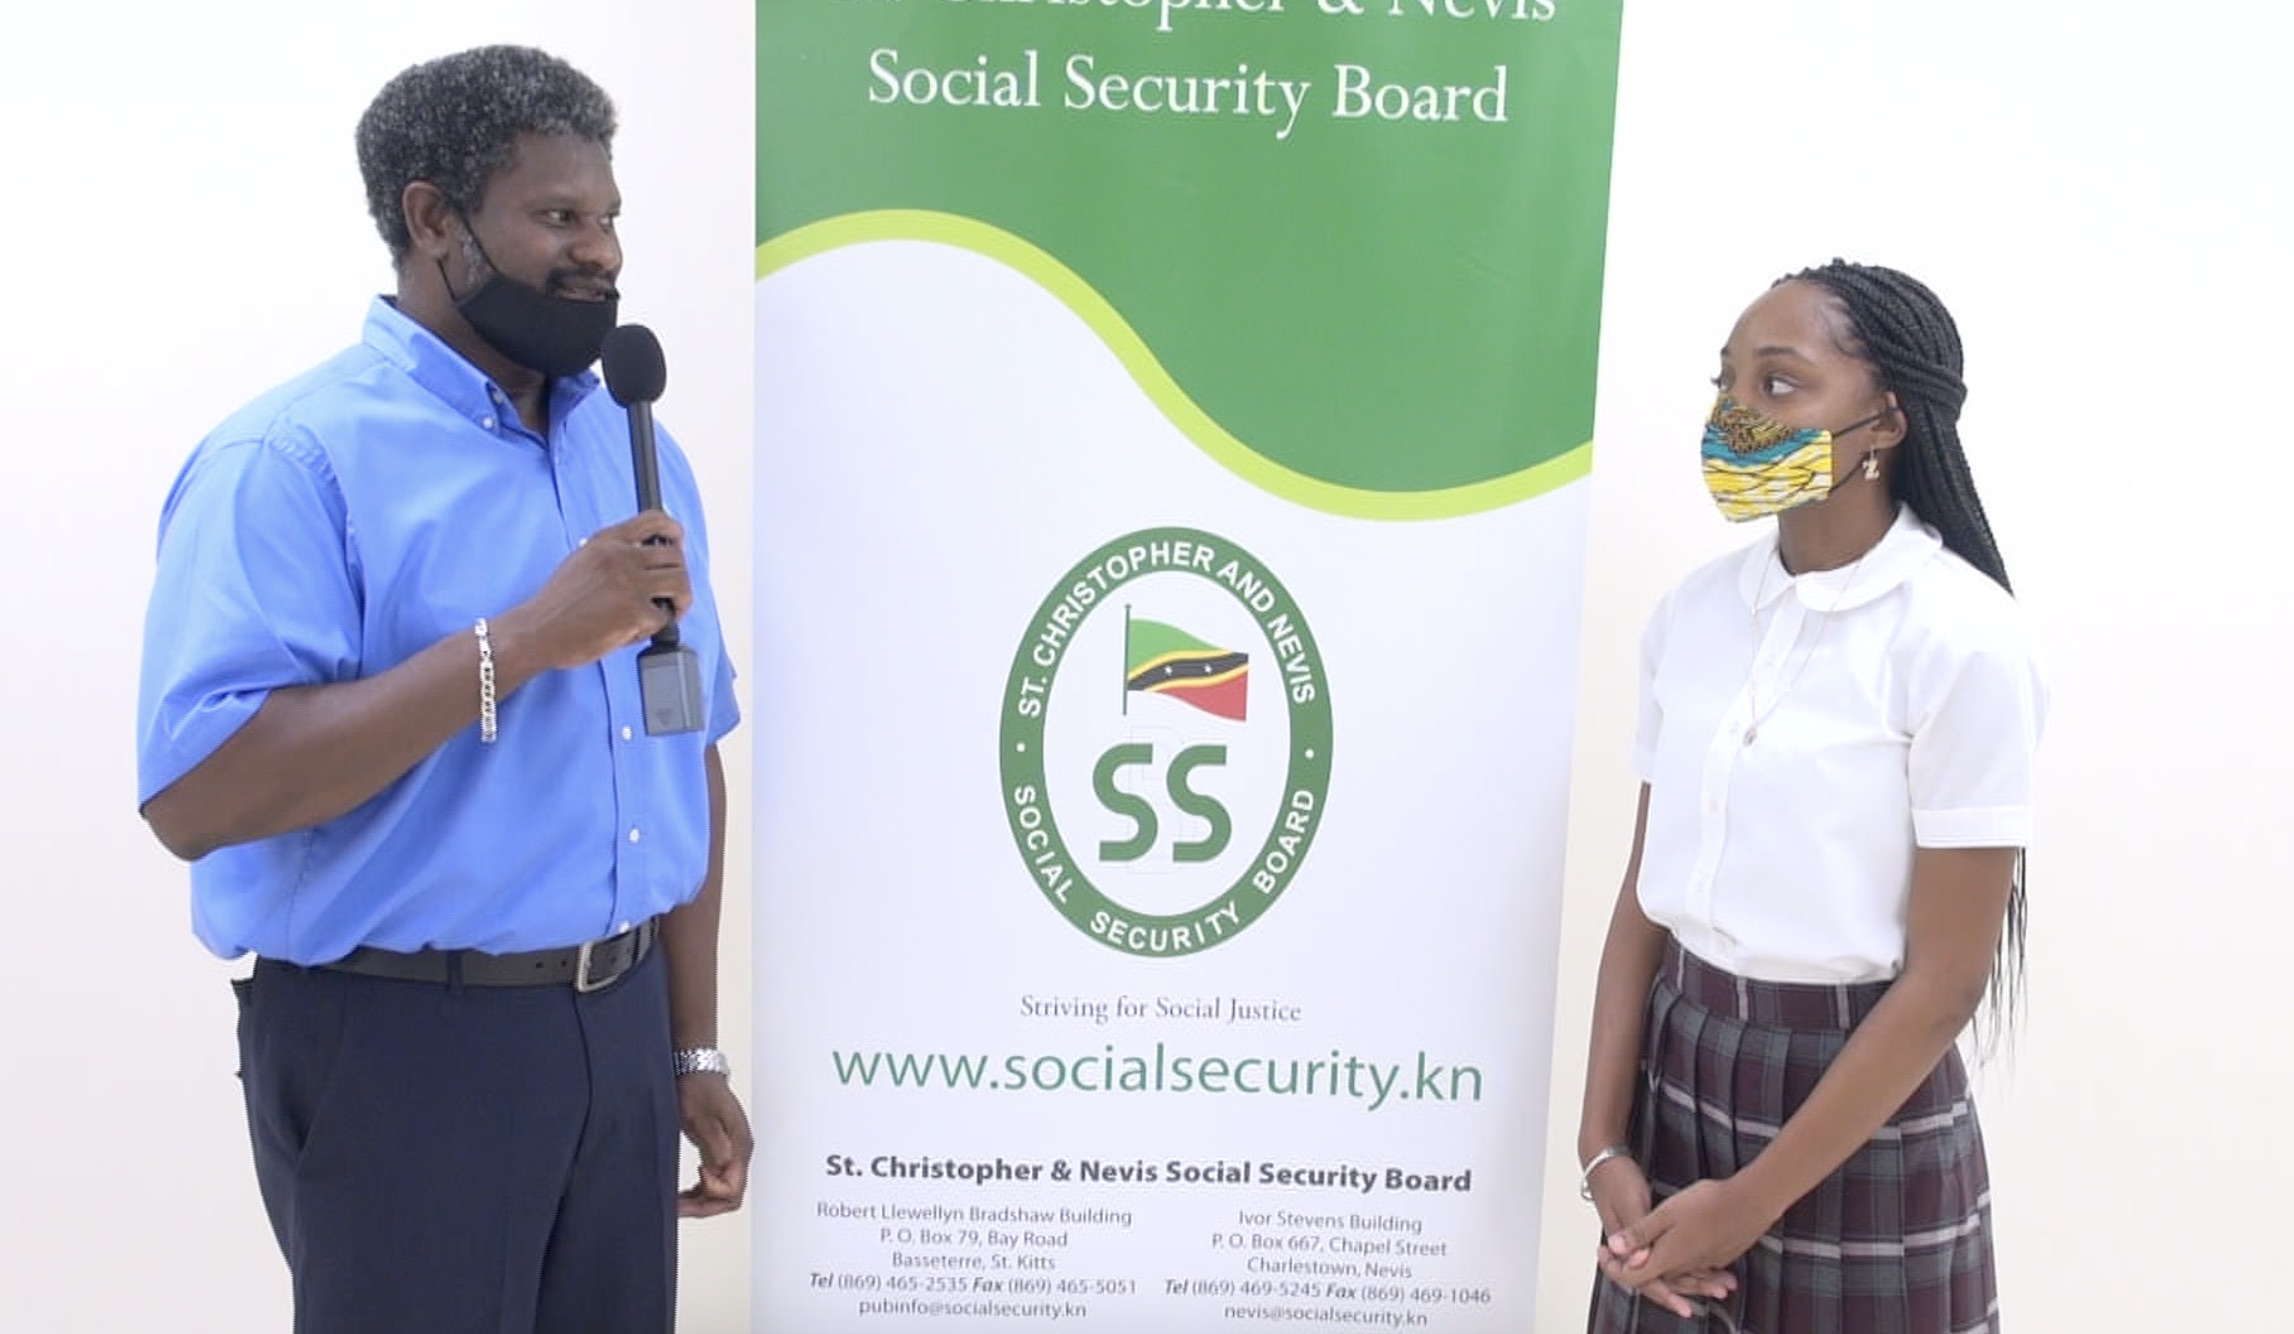 l-r) Mr. Donovan Herbert, Senior Branch Manager of the St. Christopher and Nevis Social Security Board, Nevis Branch thanking Ms. Zwena Jones of Zee's Exquisite Apparel Line (ZEAL), a budding entrepreneur, recipient of a St. Christopher and Nevis Social Security Board Scholarship and a student of the Nevis Sixth Form College at the Social Security's Board Room at Pinney's Estate on September 25, 2020, for her donation of 25 fabric masks to the Branch members to assist in their fight against COVID-19